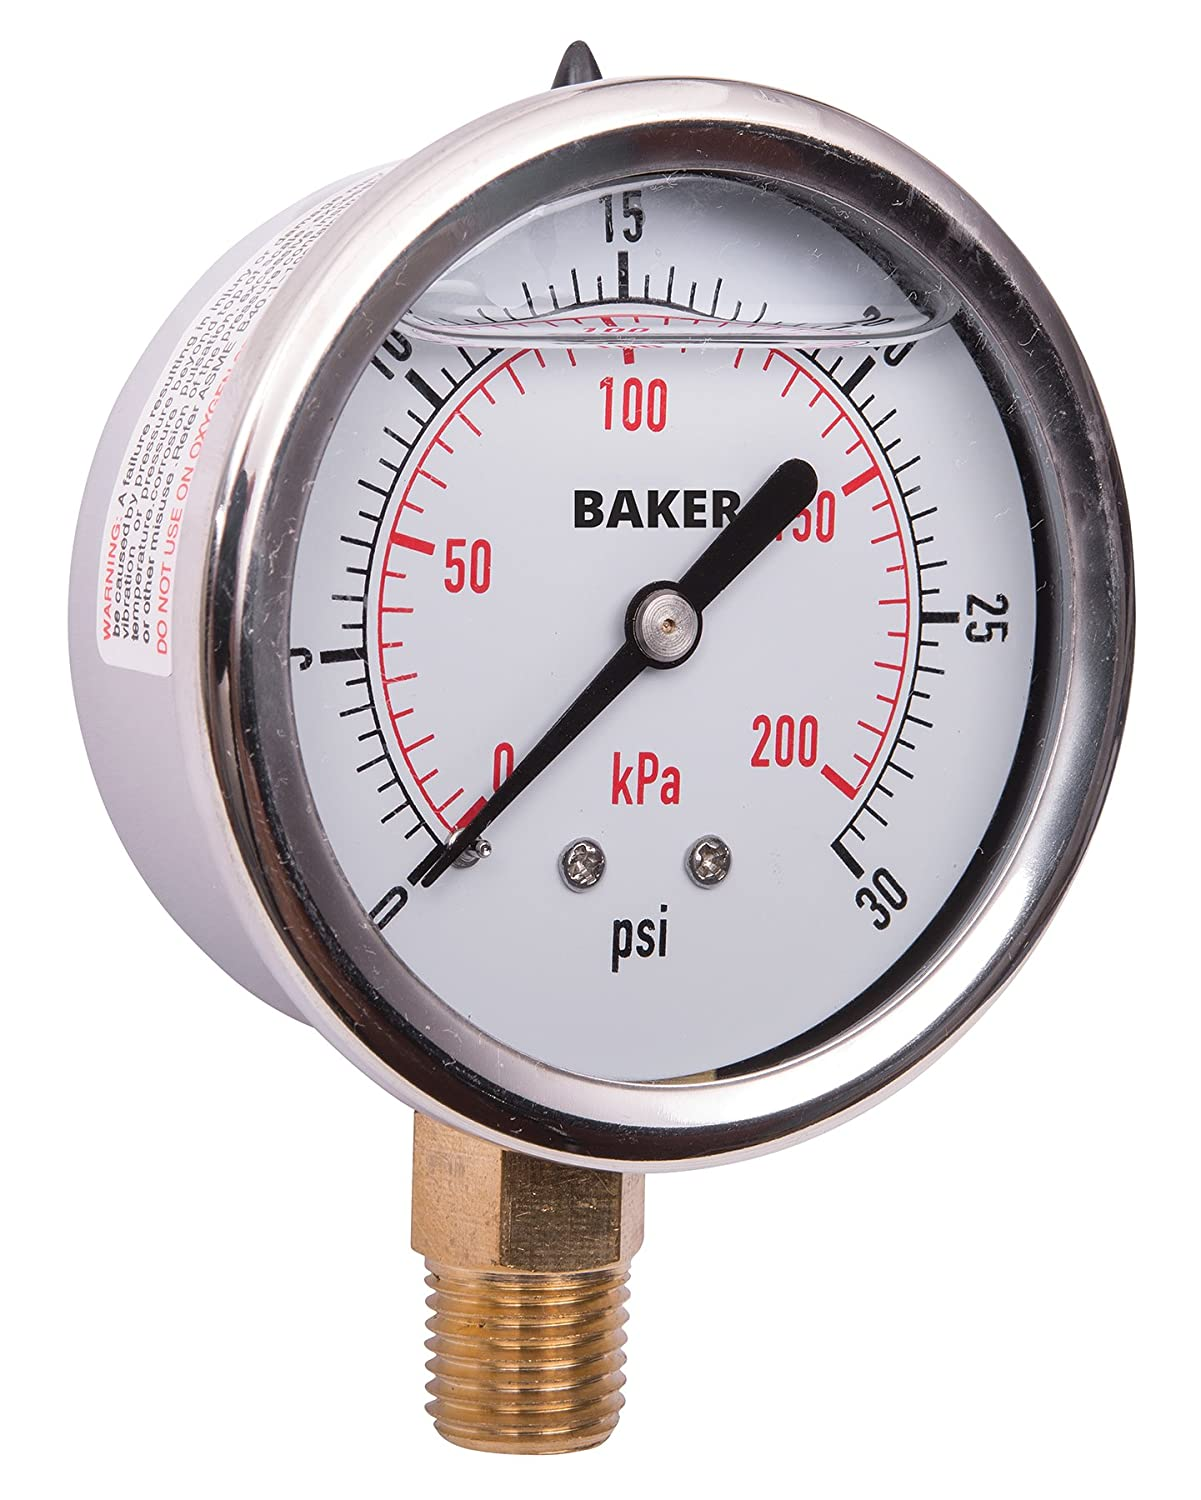 0 to 30 psi//kPa 2.5Dial Glycerine Filled -1.6/% Accuracy Baker Instruments AVNC Series Stainless Steel Dual Scale Pressure Gauge 1//4 NPT Bottom Mount